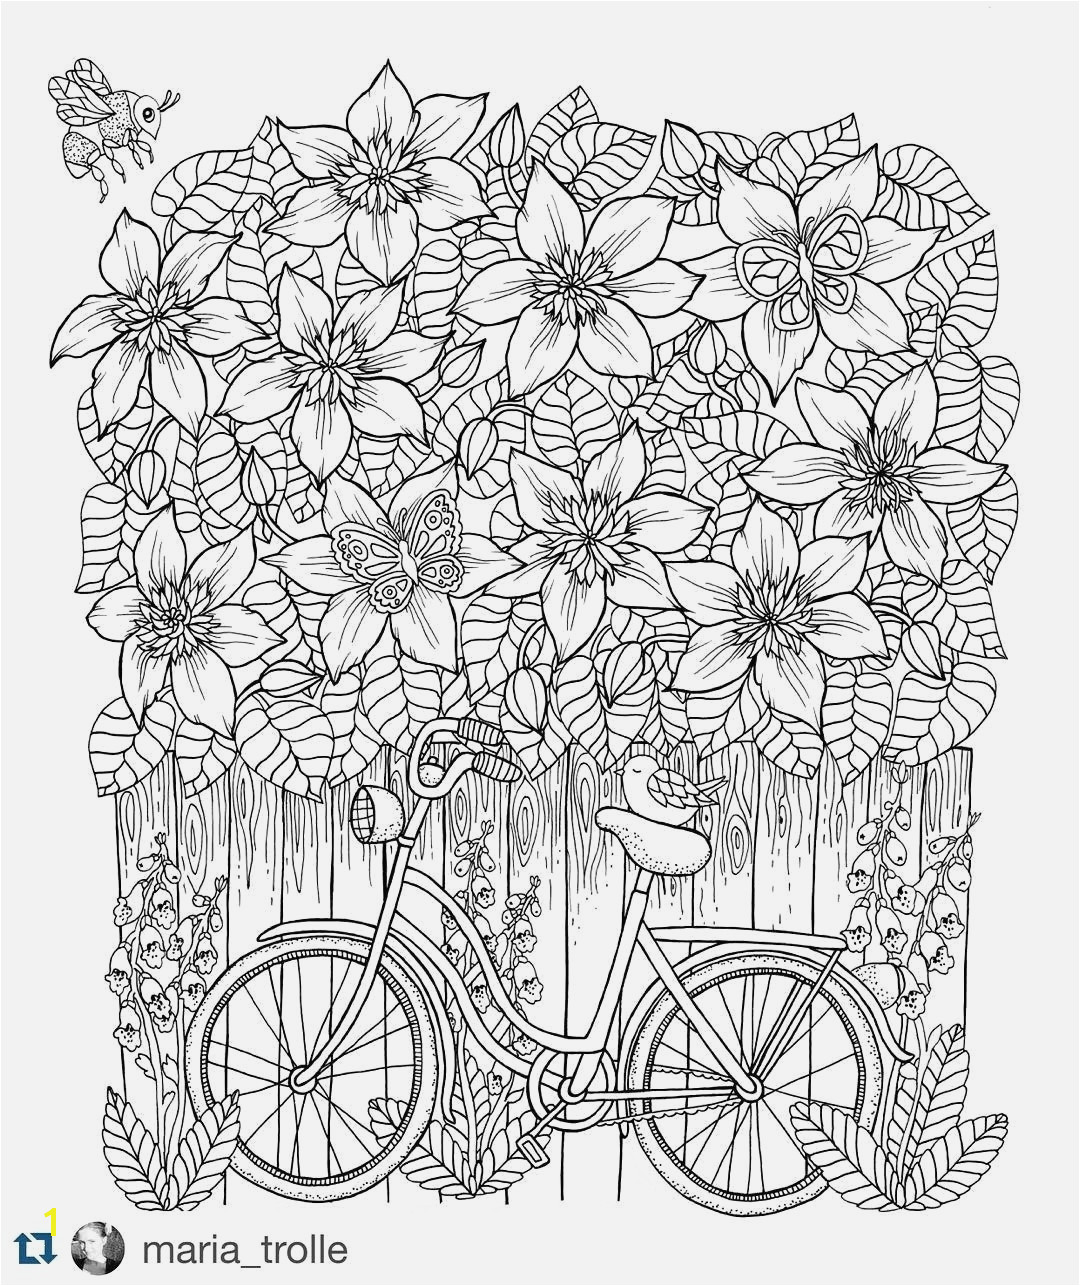 Easy Adult Coloring Pages Printable Simple Adult Coloring Pages Best Best Coloring Page Adult Od Kids